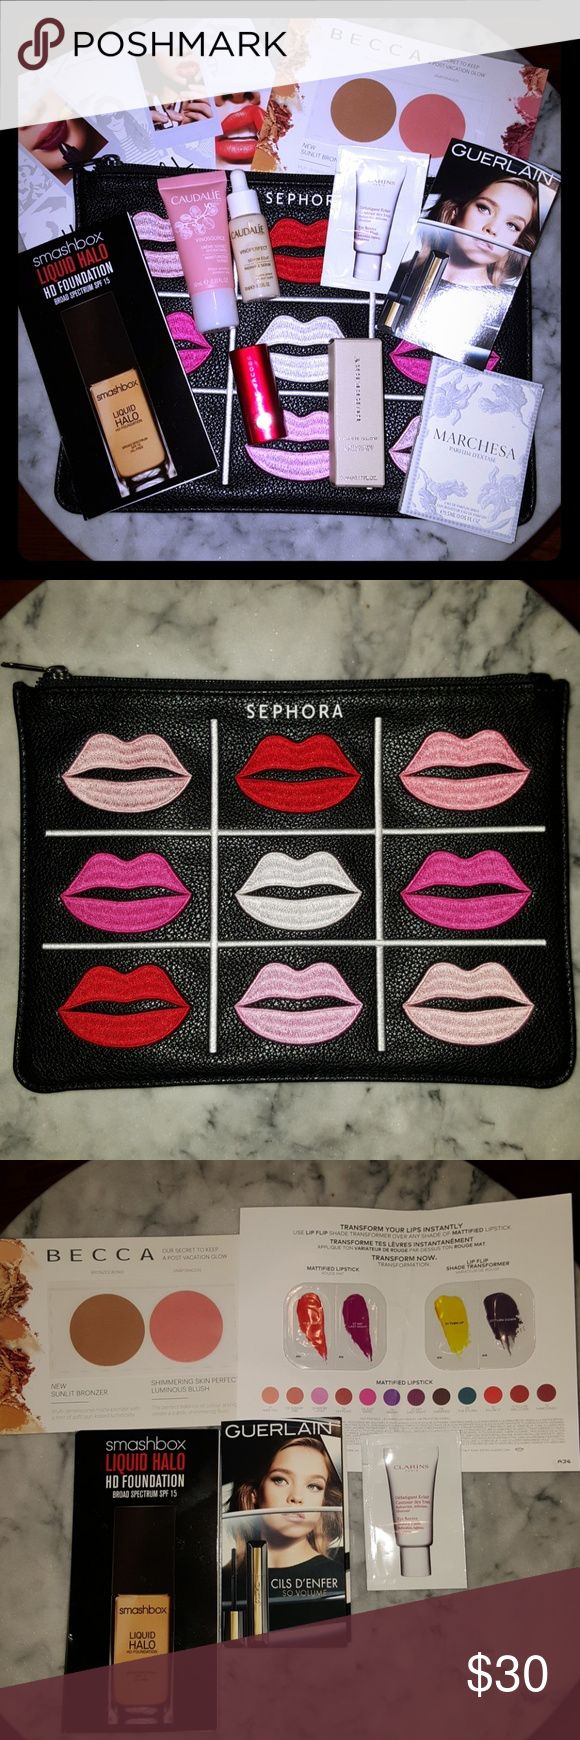 Sephora Lip Clutch With Regular And Deluxe Samples Beautiful sephora leather makeup clutch with lip design. Includes regular and deluxe samples, including Guerlain mascara, Smashbox liquid halo foundation, Becca bronzer and blush, Estee Lauder lipstick samples, Burberry fresh glow base, Clarins eye revive, Caudalie creme and serum, Marc Jacobs lipstick in So Rouge. Sephora Makeup